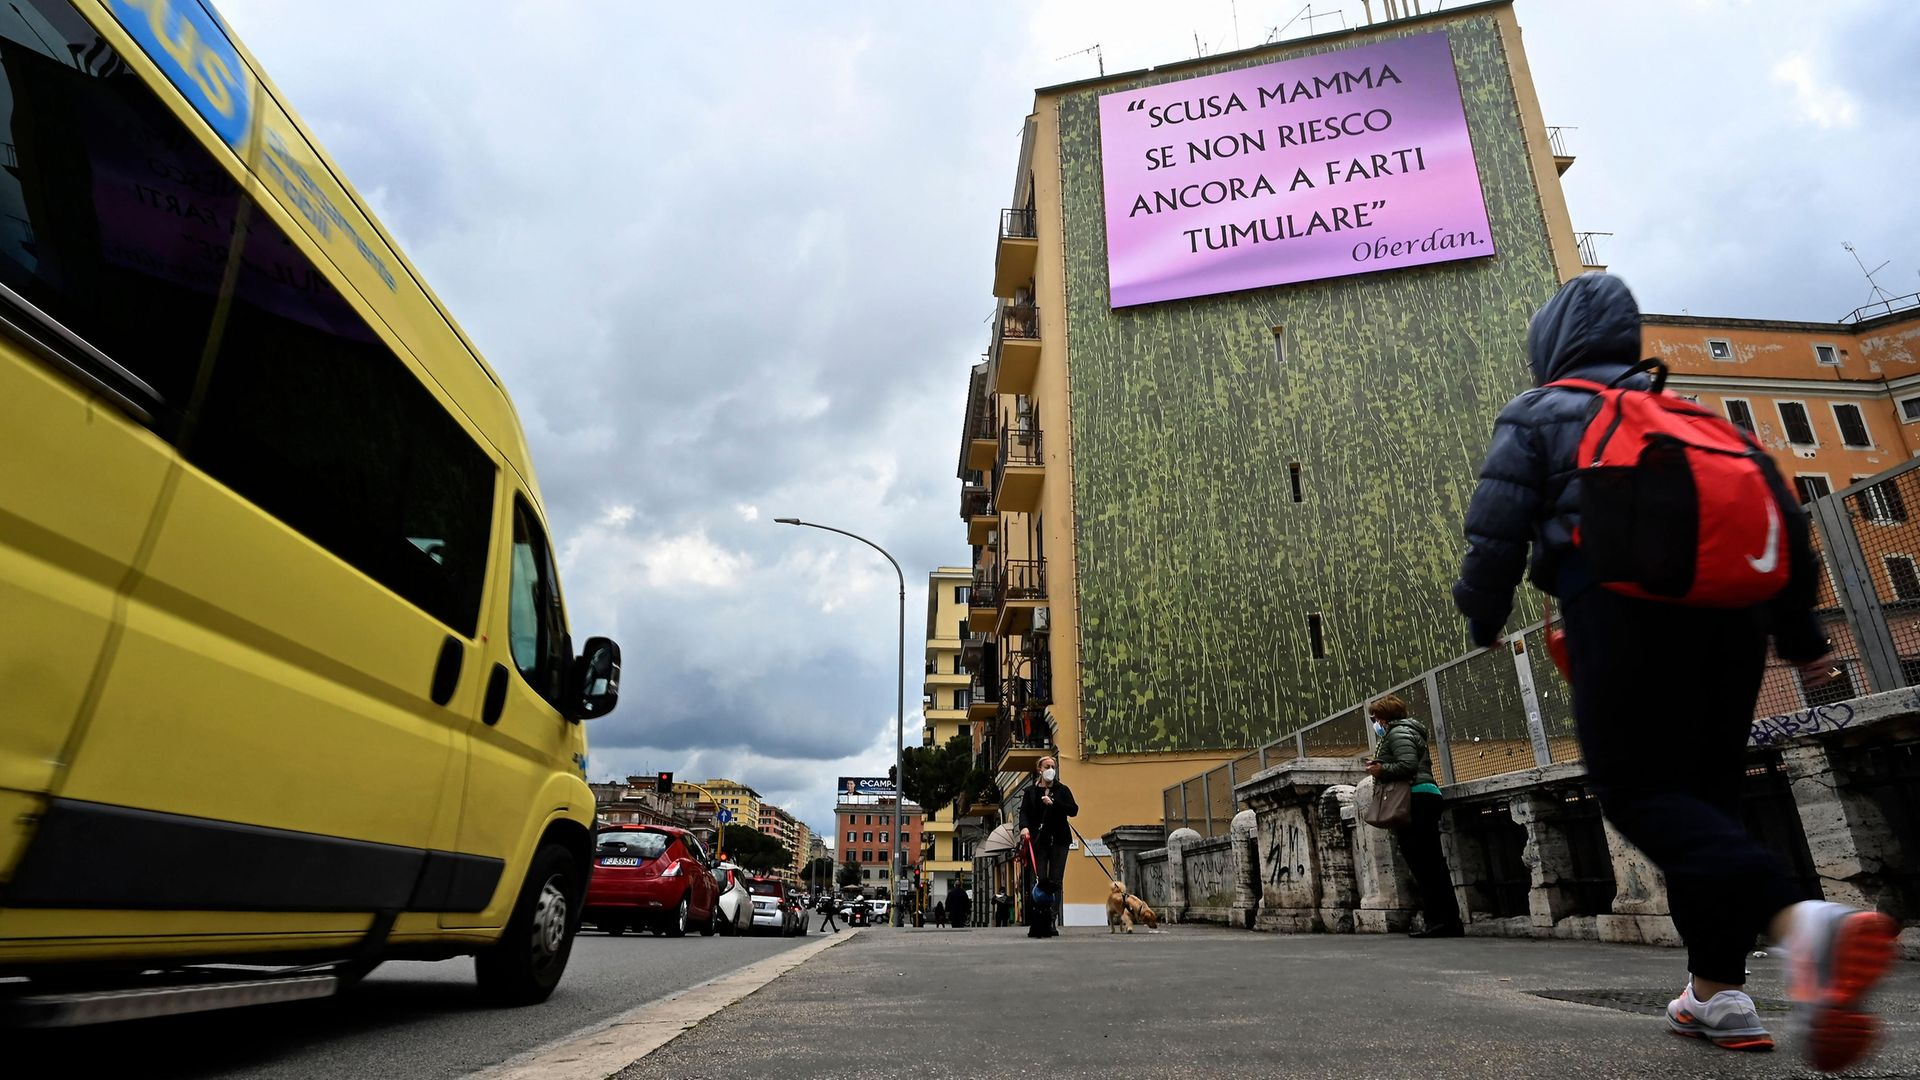 """The Rome advertising boards put up by Oberdan Zuccaroli in protest at not being able to bury his mother. The message reads """"Mum, I'm sorry I've not been able to have you buried yet"""" - Credit: Photo by Alberto Pizzoli/AFP via Getty Images"""